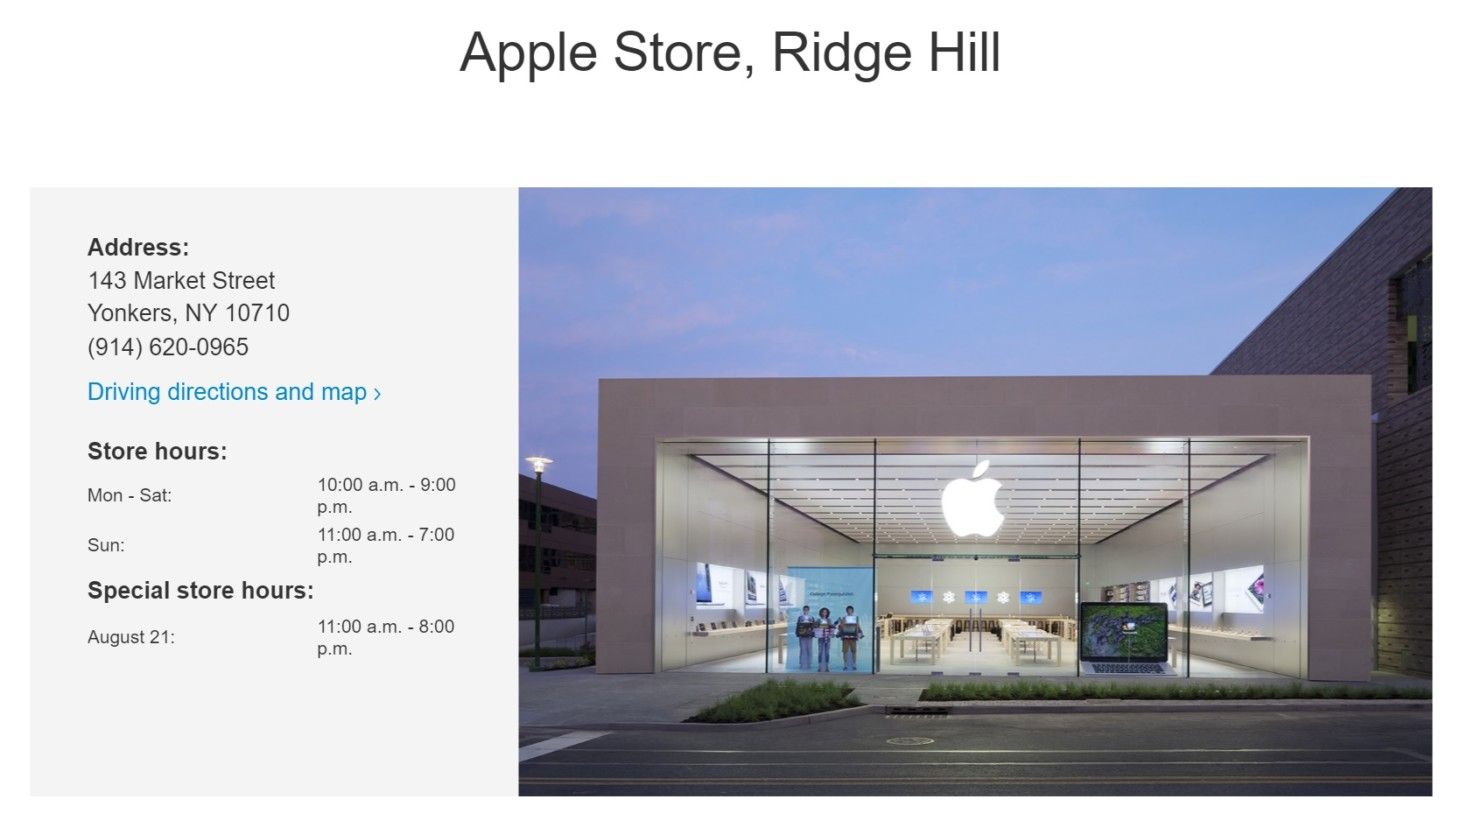 Apple Store, Ridge Hill